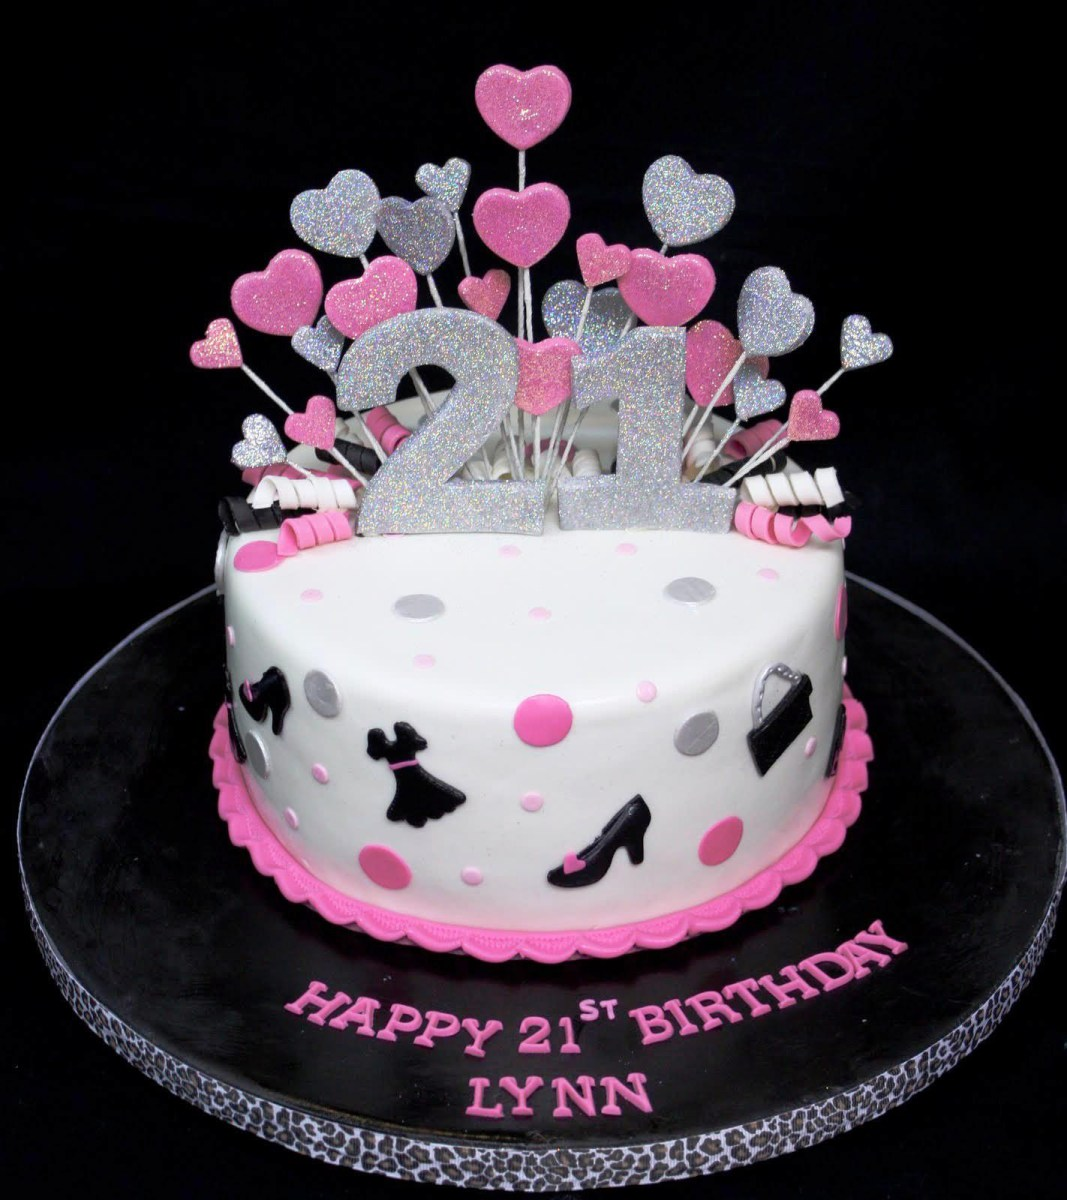 Admirable 21St Birthday Cakes For Her 21St Birthday Cake Decorating Ideas Personalised Birthday Cards Paralily Jamesorg